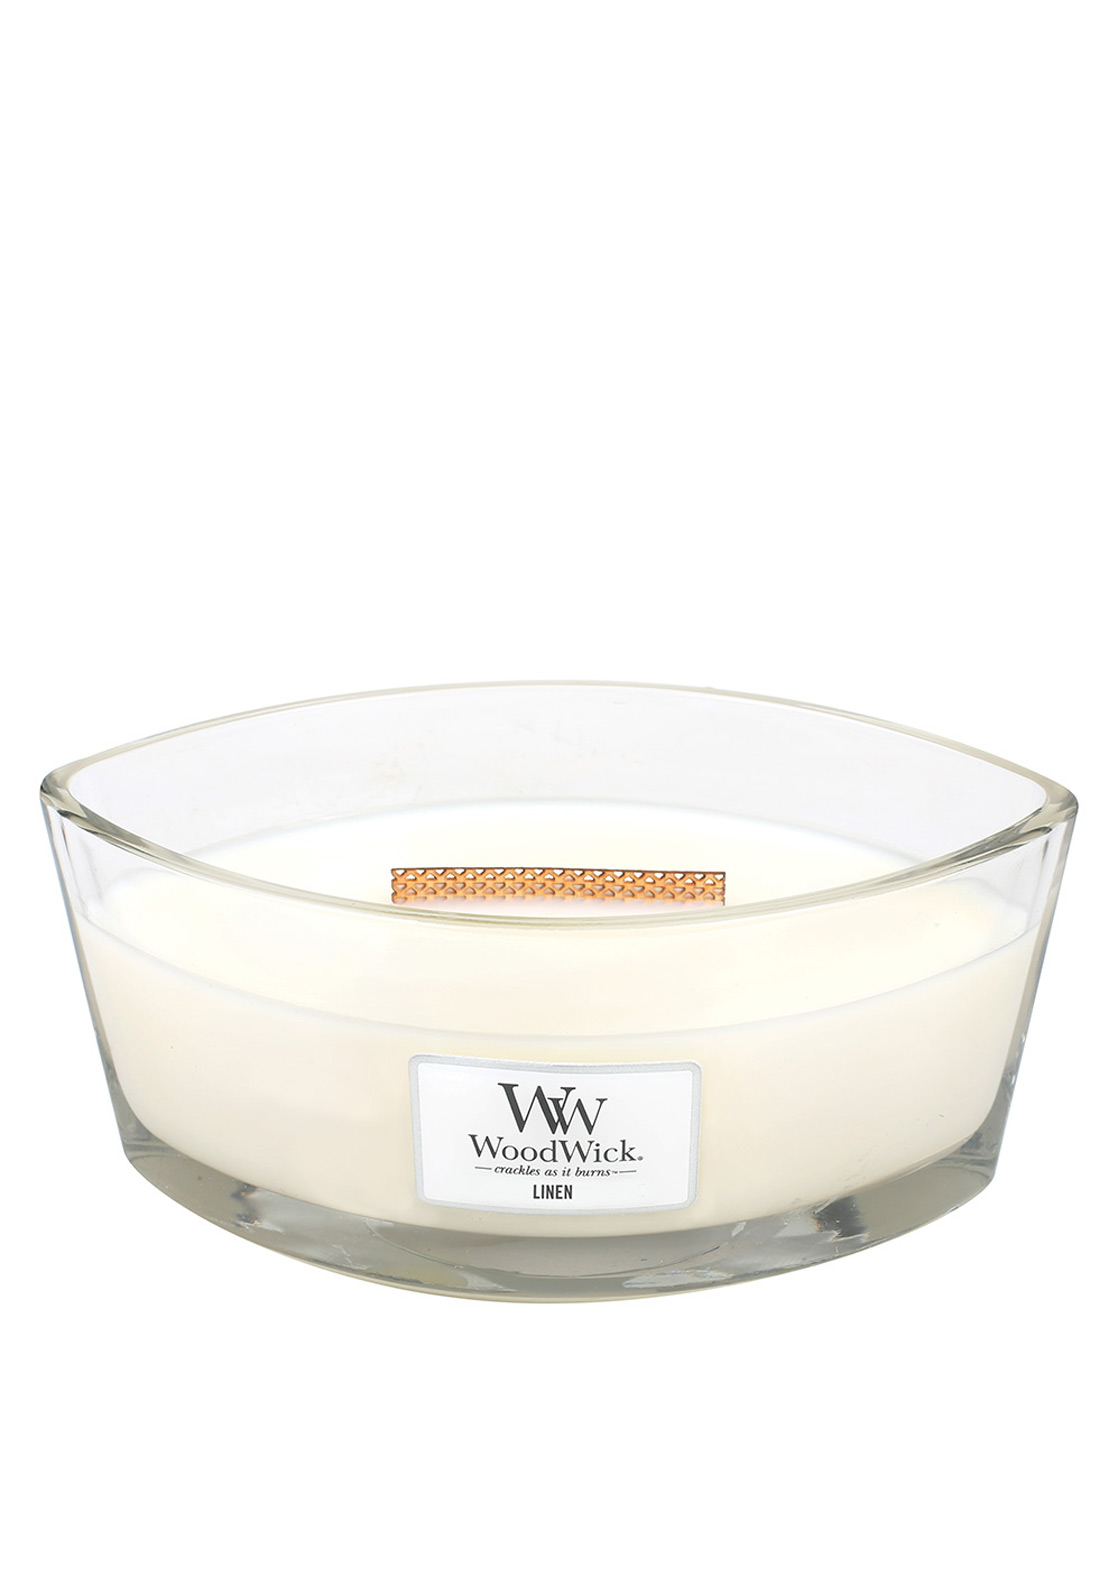 WoodWick Hearthwick Flame Large Candle, Linen